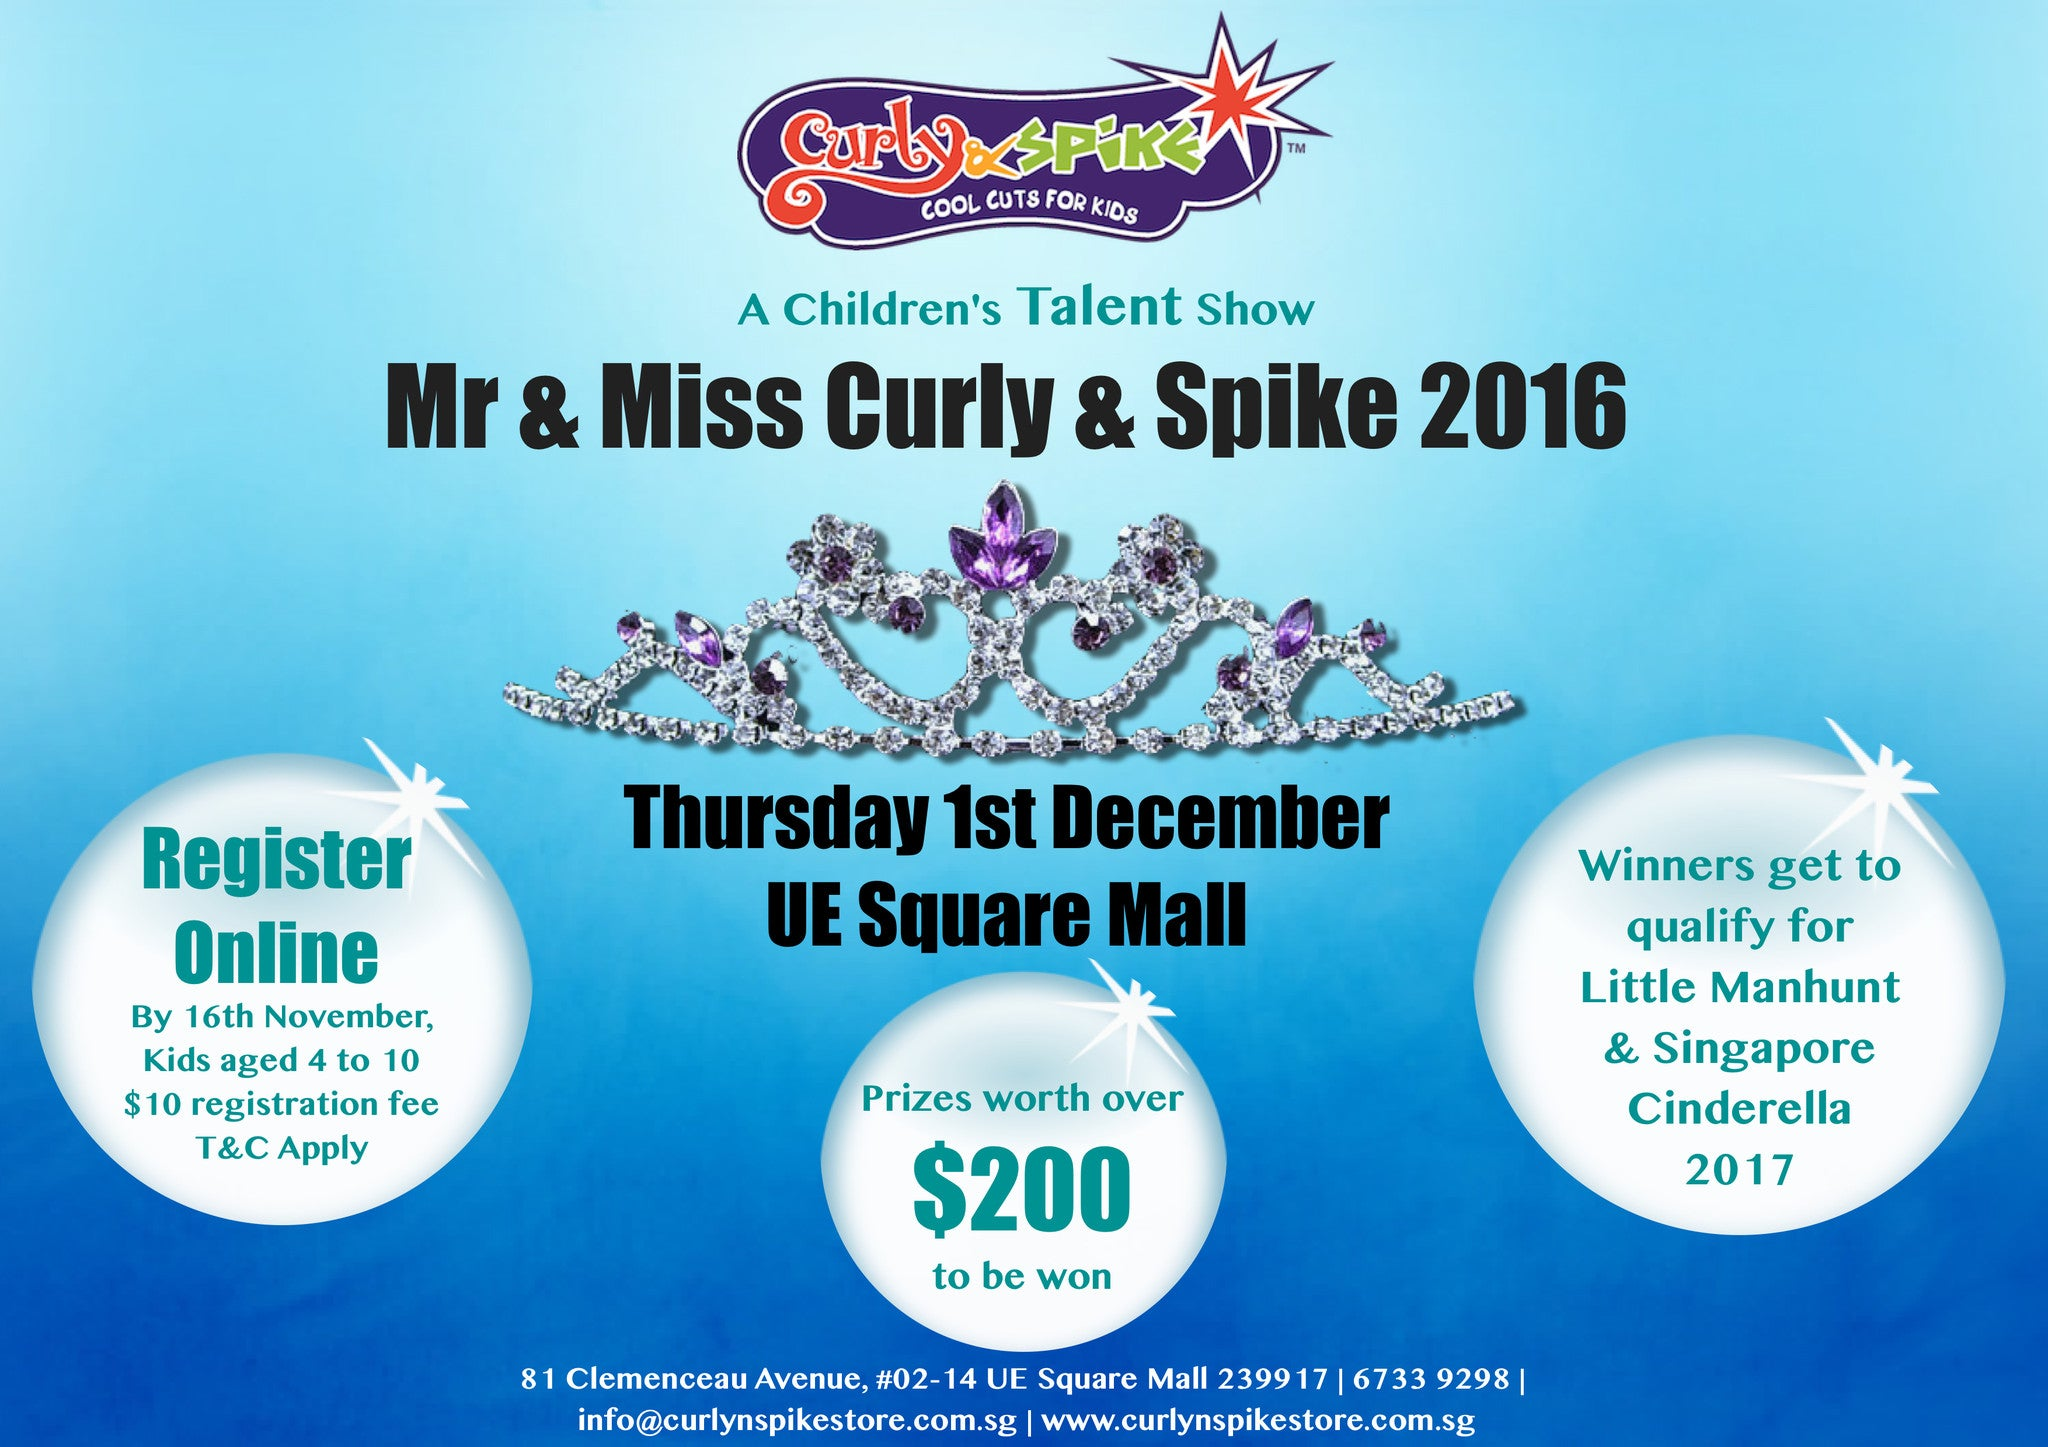 Things to do this Weekend - Mr & Miss Curly & Spike 2016